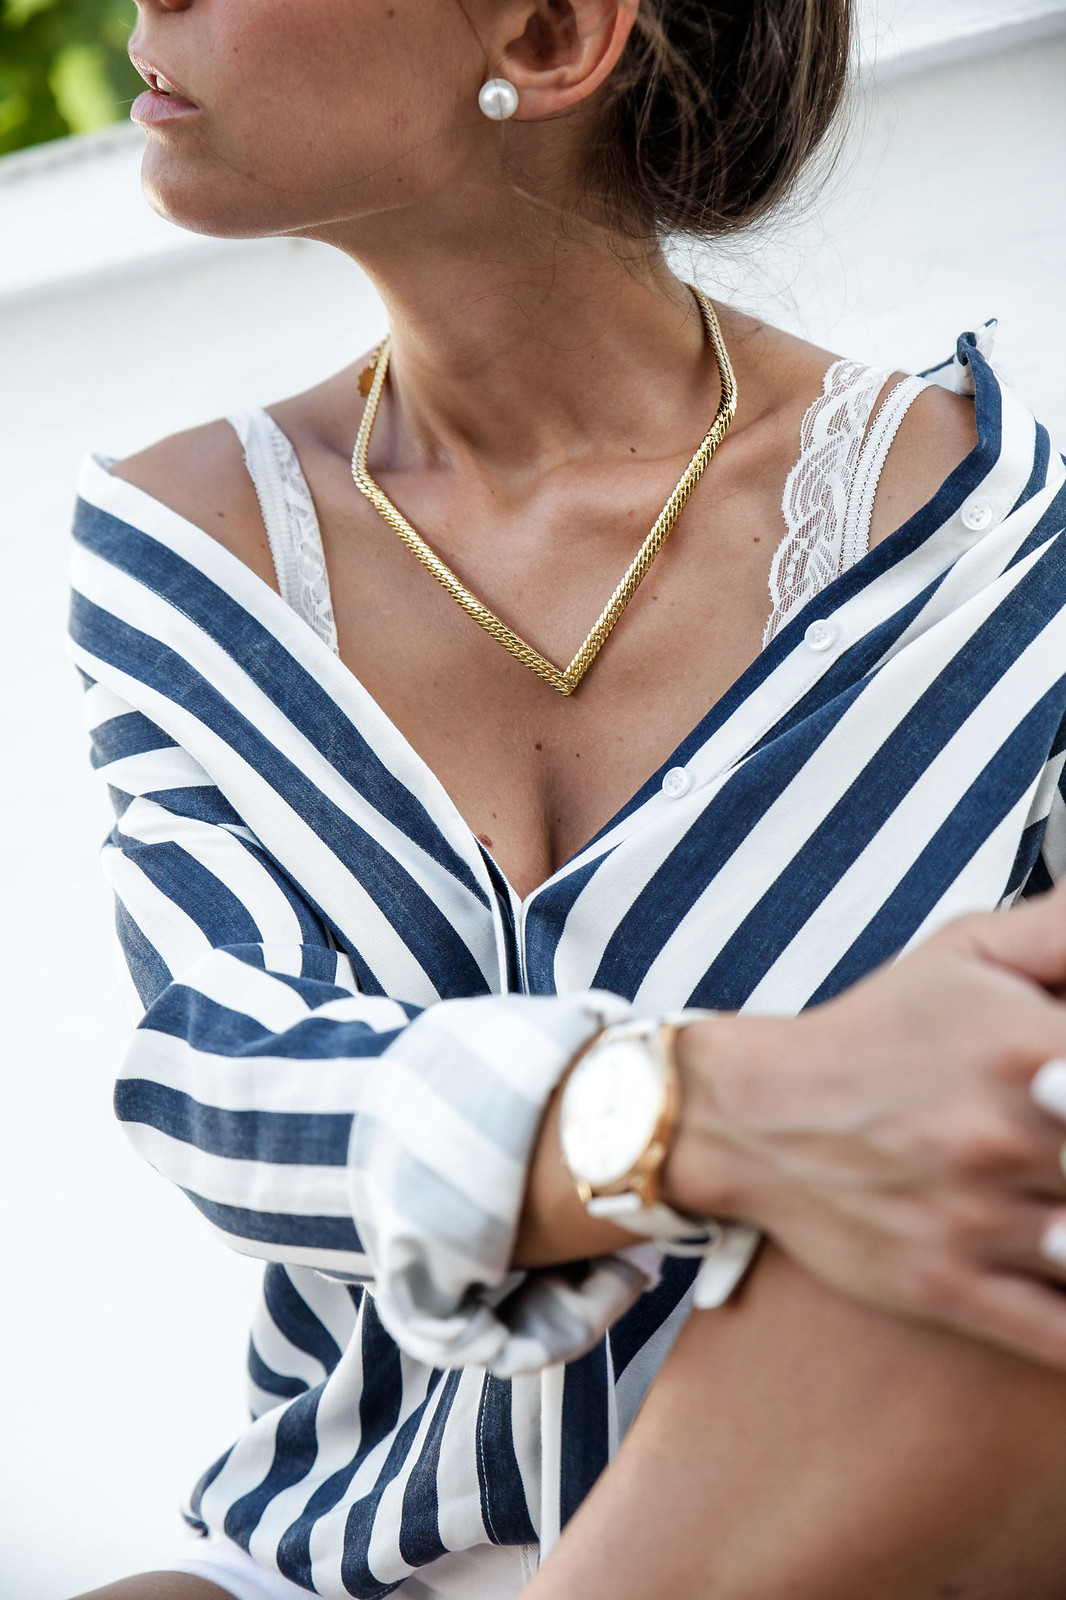 09_Leopard_and_stripes_perfec_mix_print_outfit_THEGUESTGIRL_pinterest_outfit_inspo_tumblr